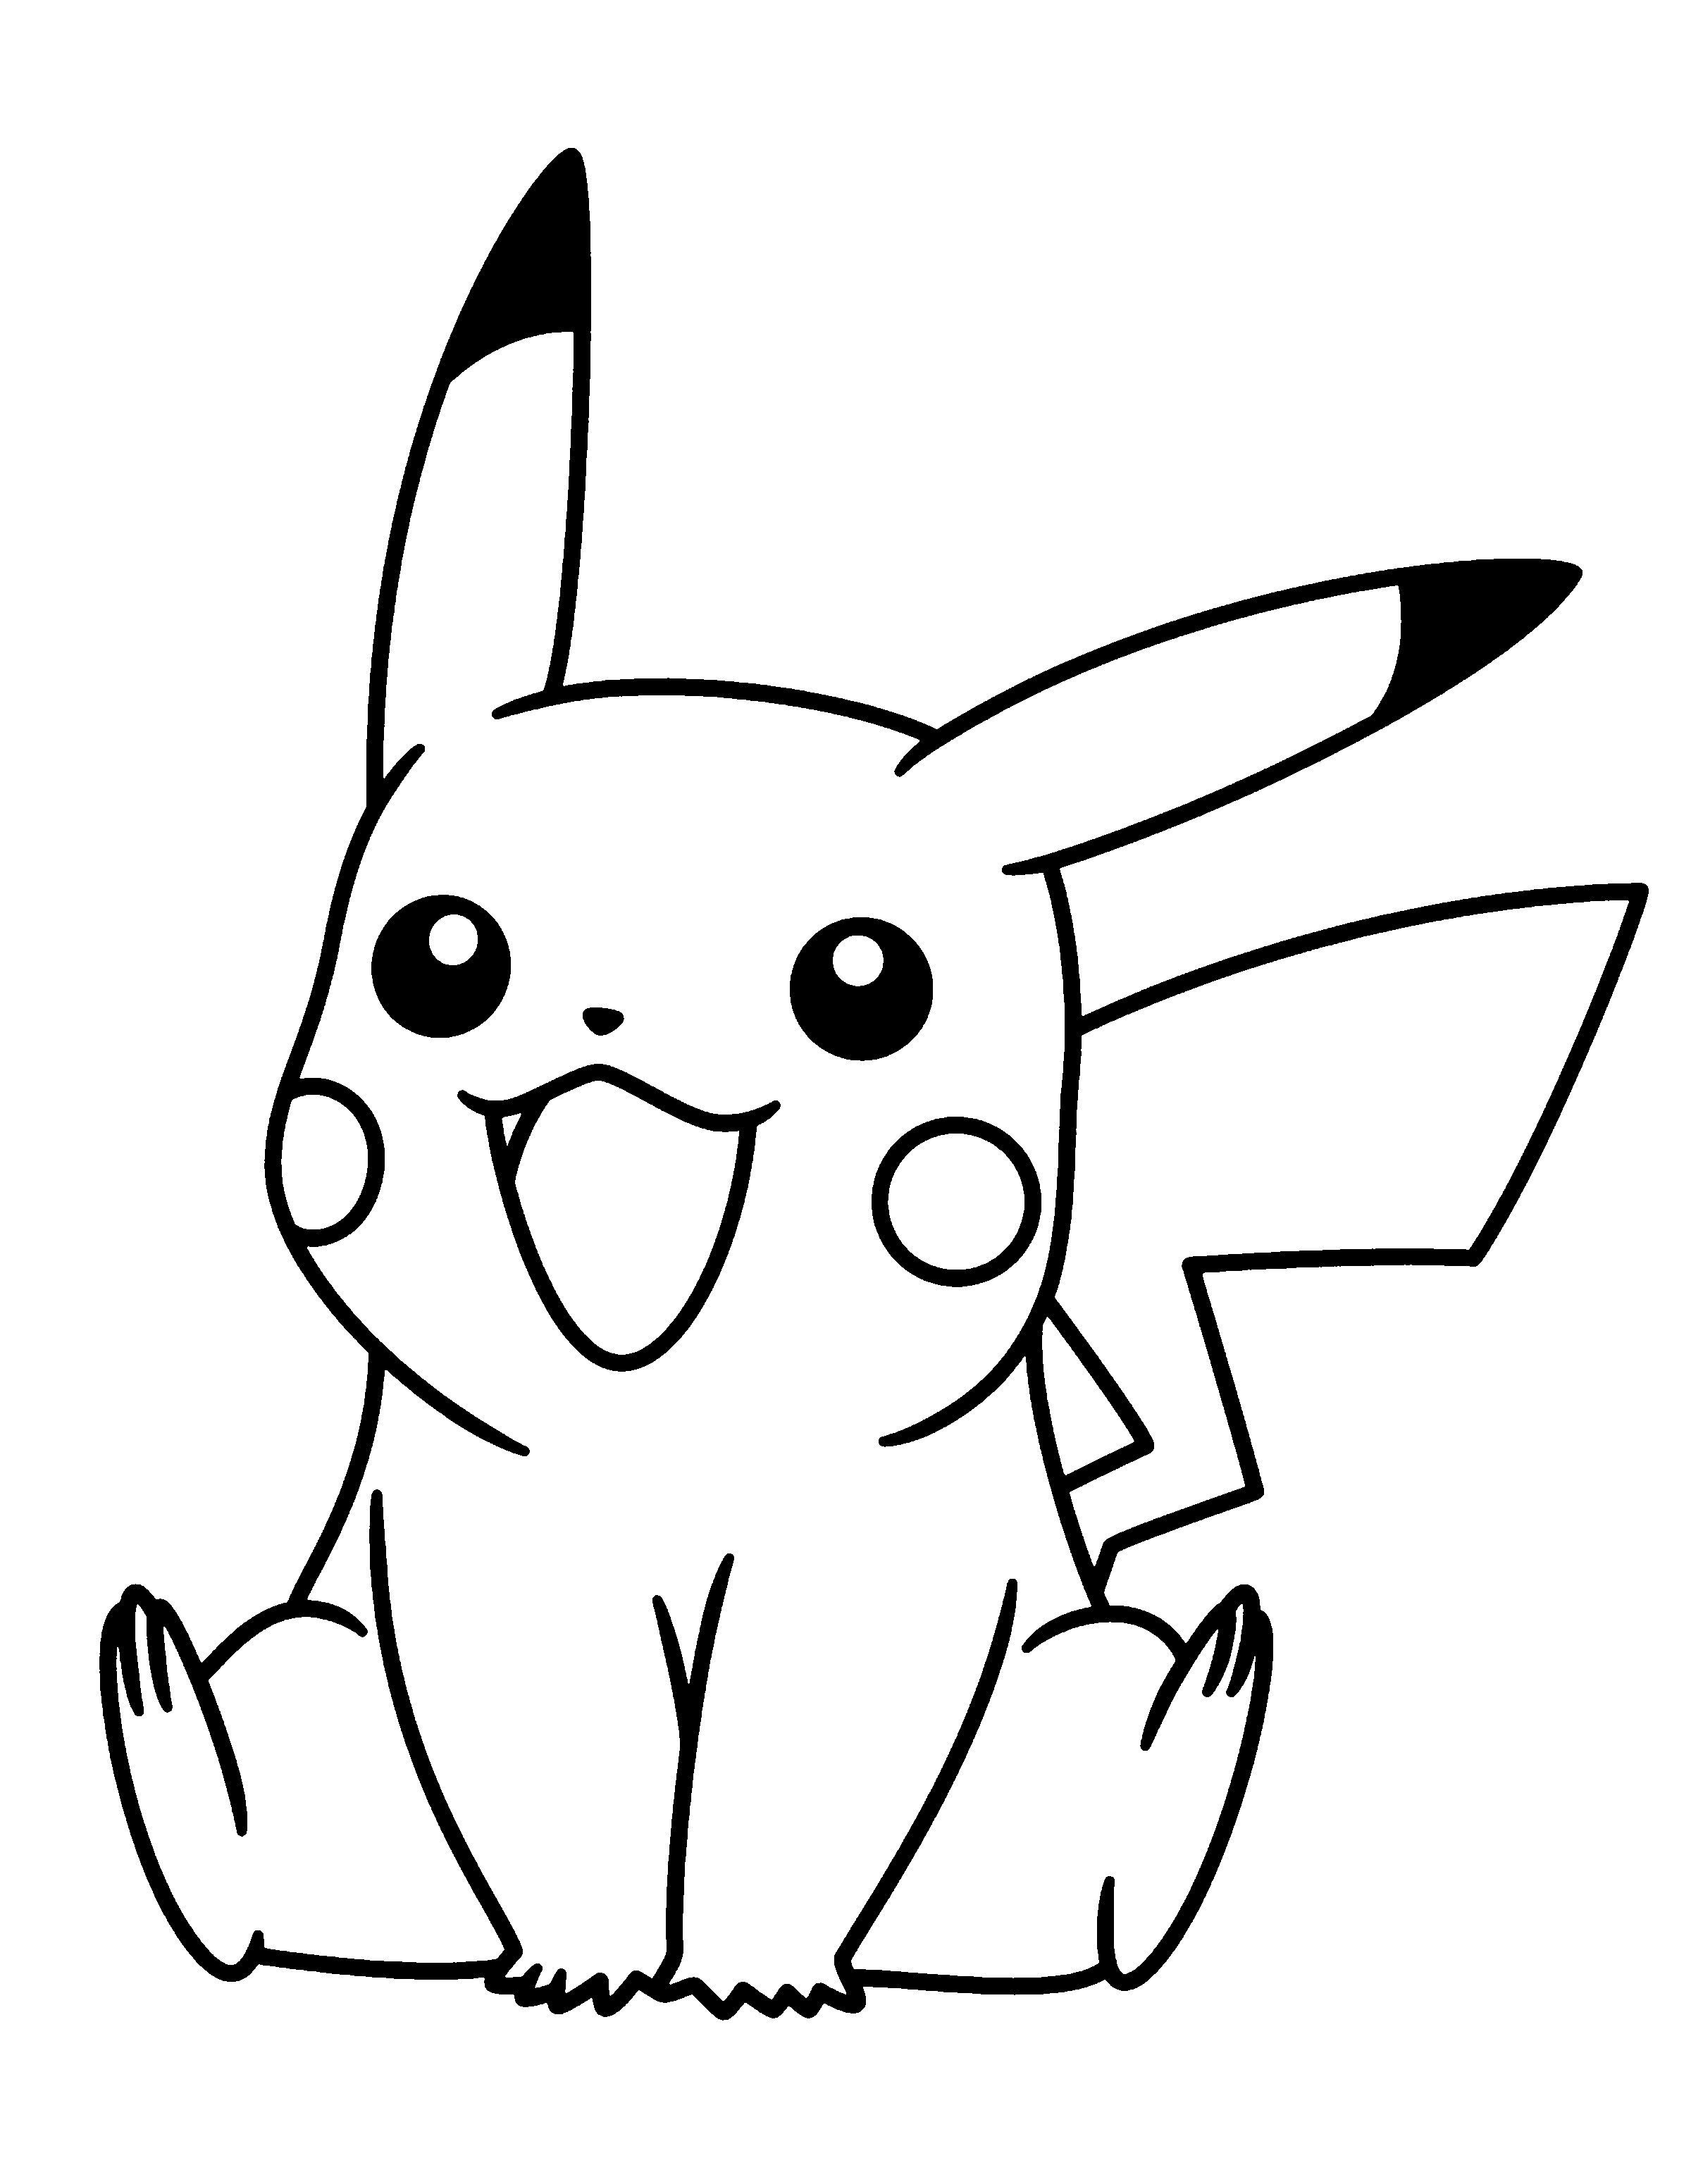 Eevee And Pikachu Coloring Pages From The Thousands Of Photographs Online Regarding Eevee And Pik Pikachu Coloring Page Kitty Coloring Pokemon Coloring Pages